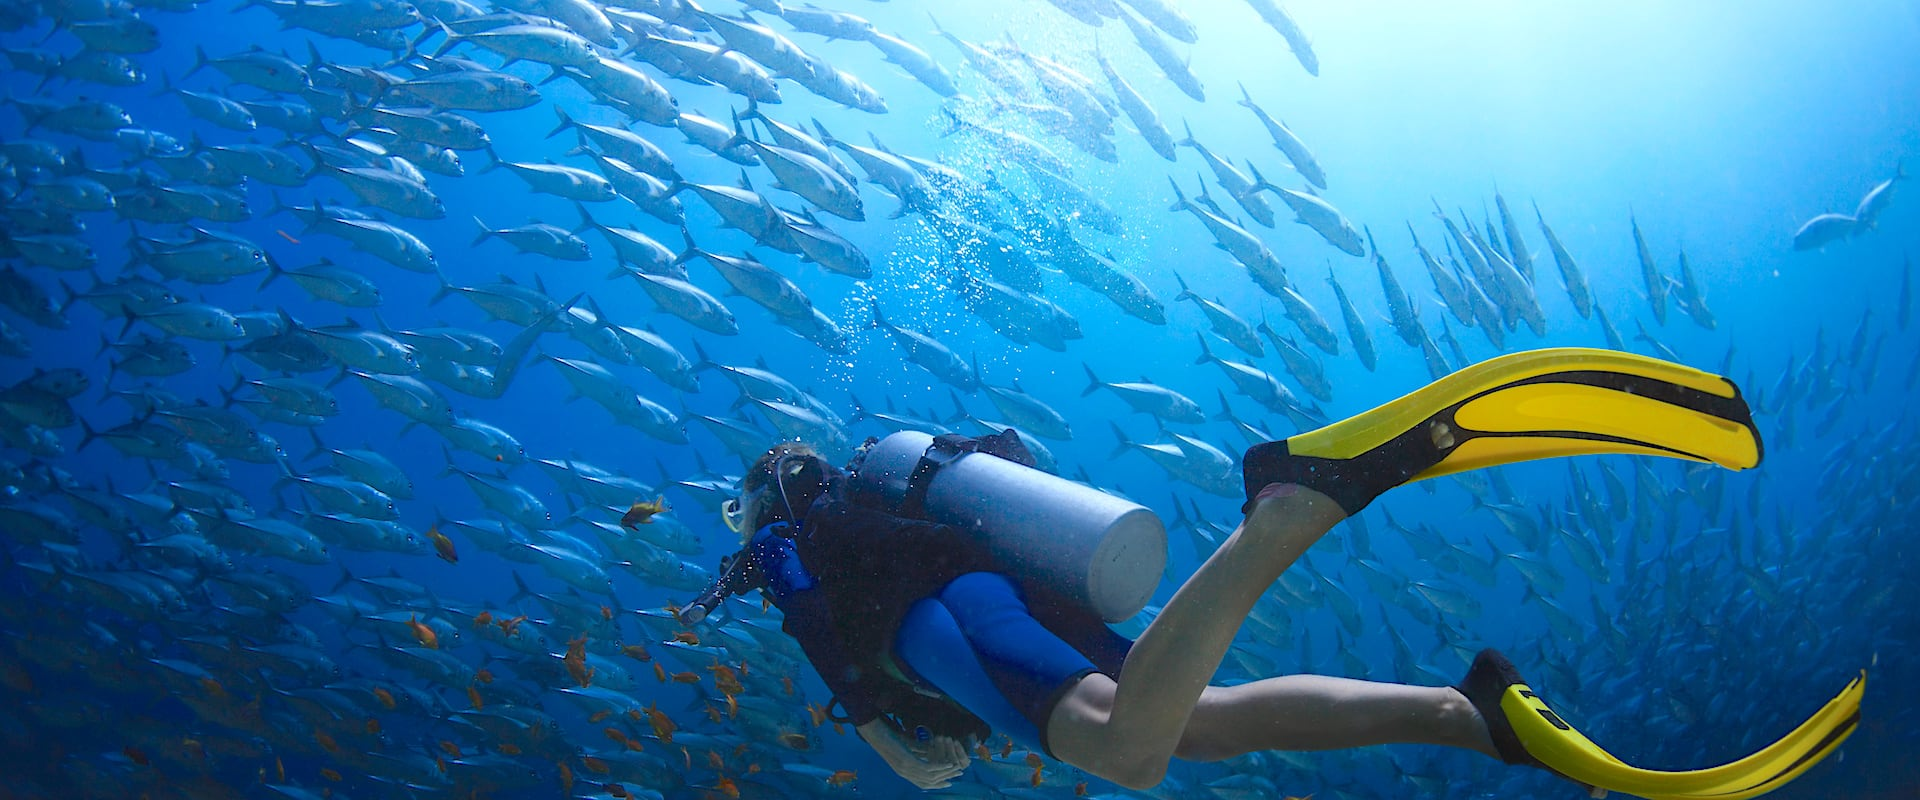 Jessie Beazley Reef Liveaboard Diving